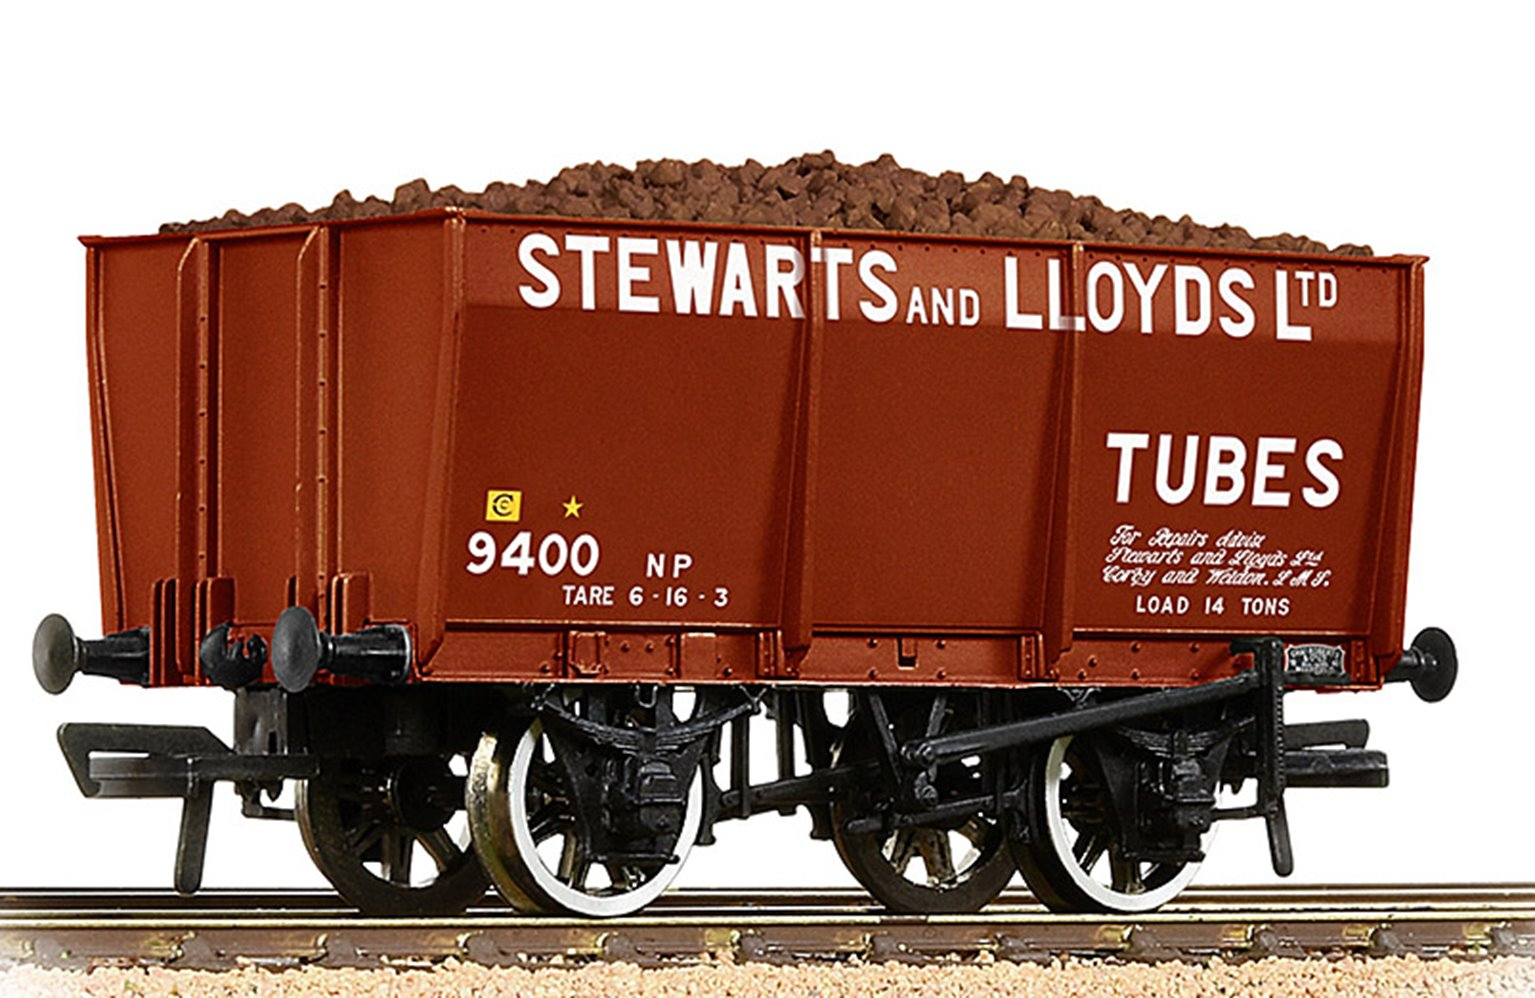 16T Steel Slope-Sided Mineral Wagon 'Stewart & Lloyds' Red